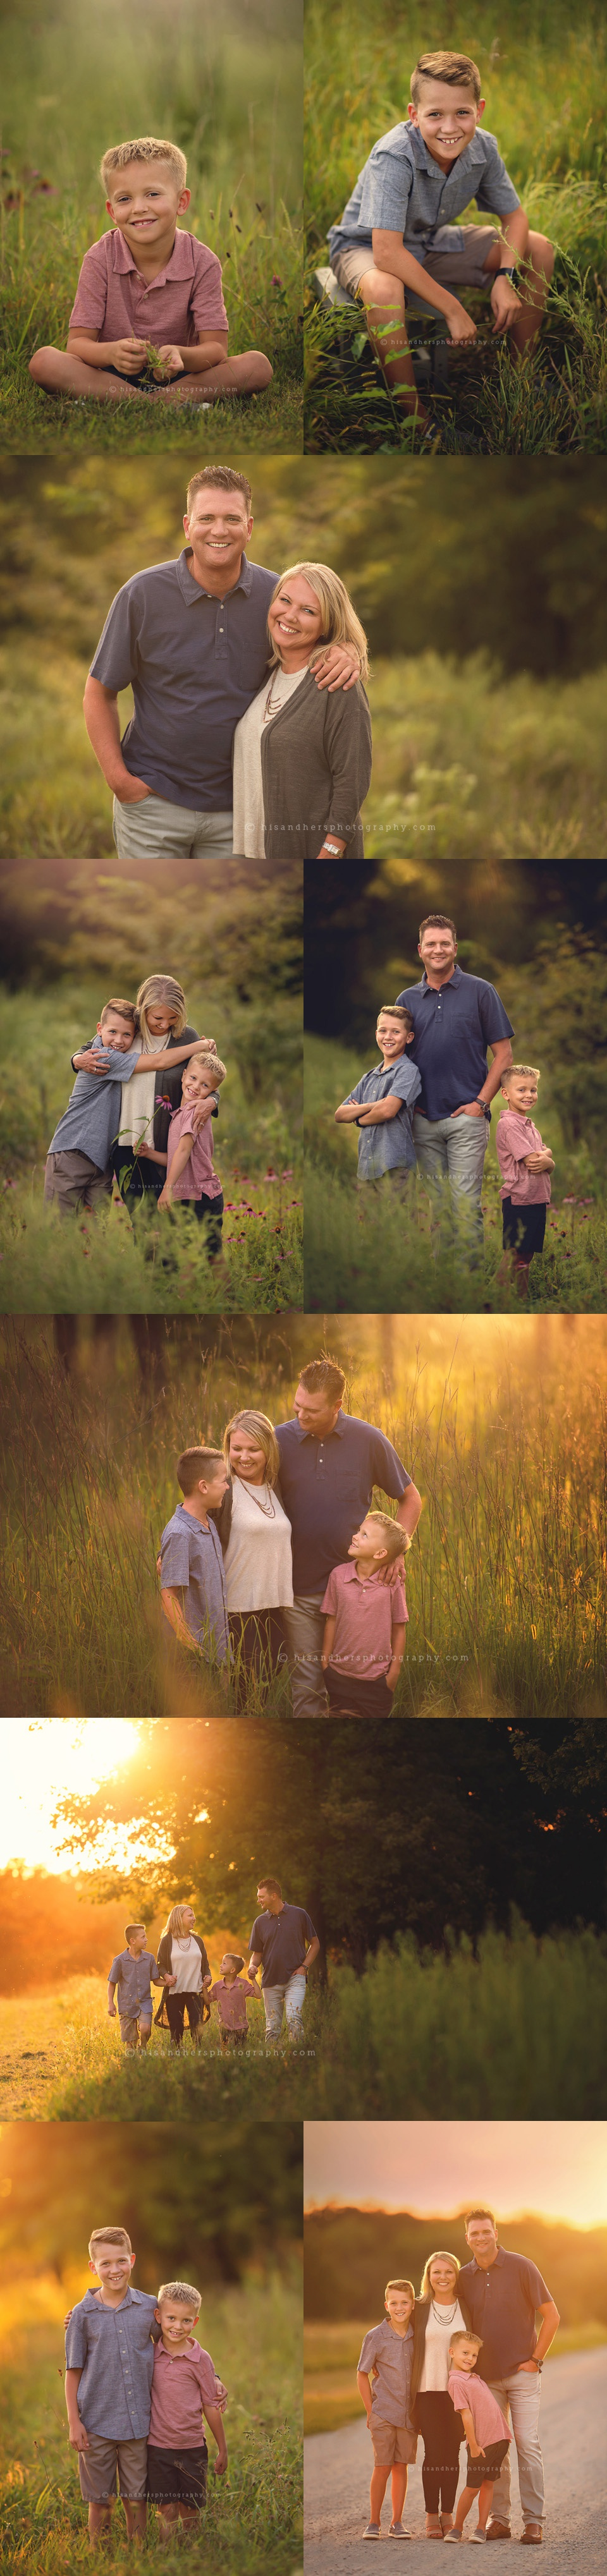 des moines iowa outdoor family photographer family pictures family portraits